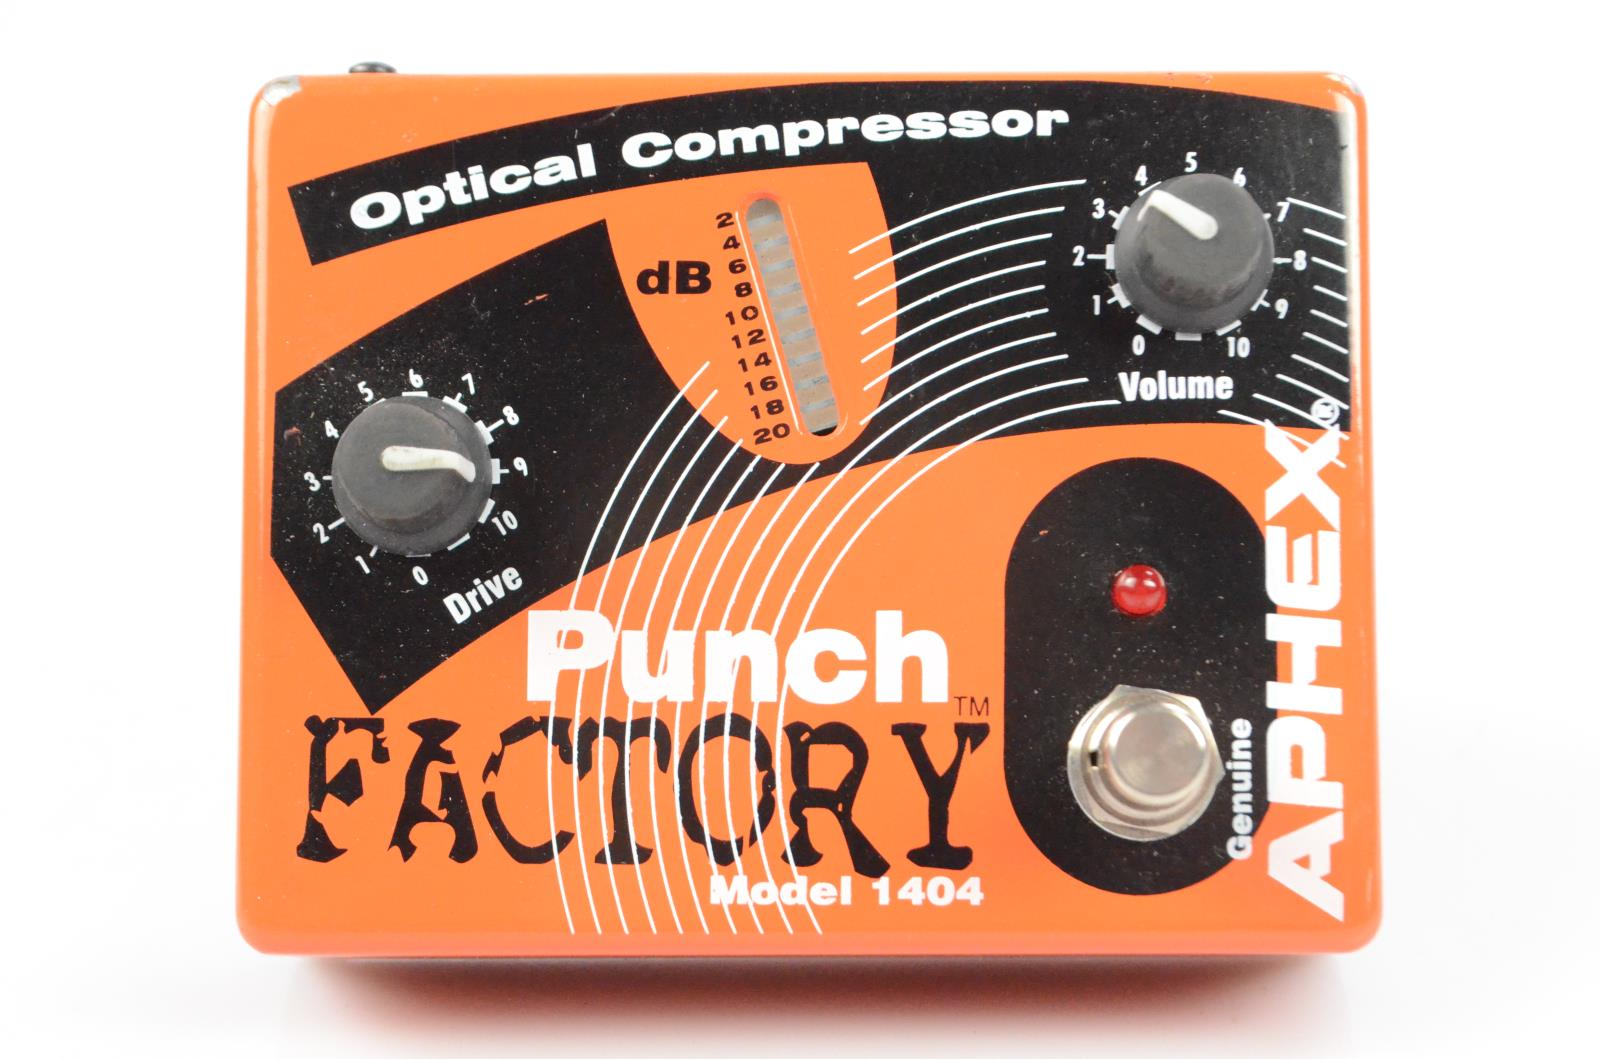 Aphex Punch Factory Model 1404 Compressor Pedal Owned by Carlos Rios #33966